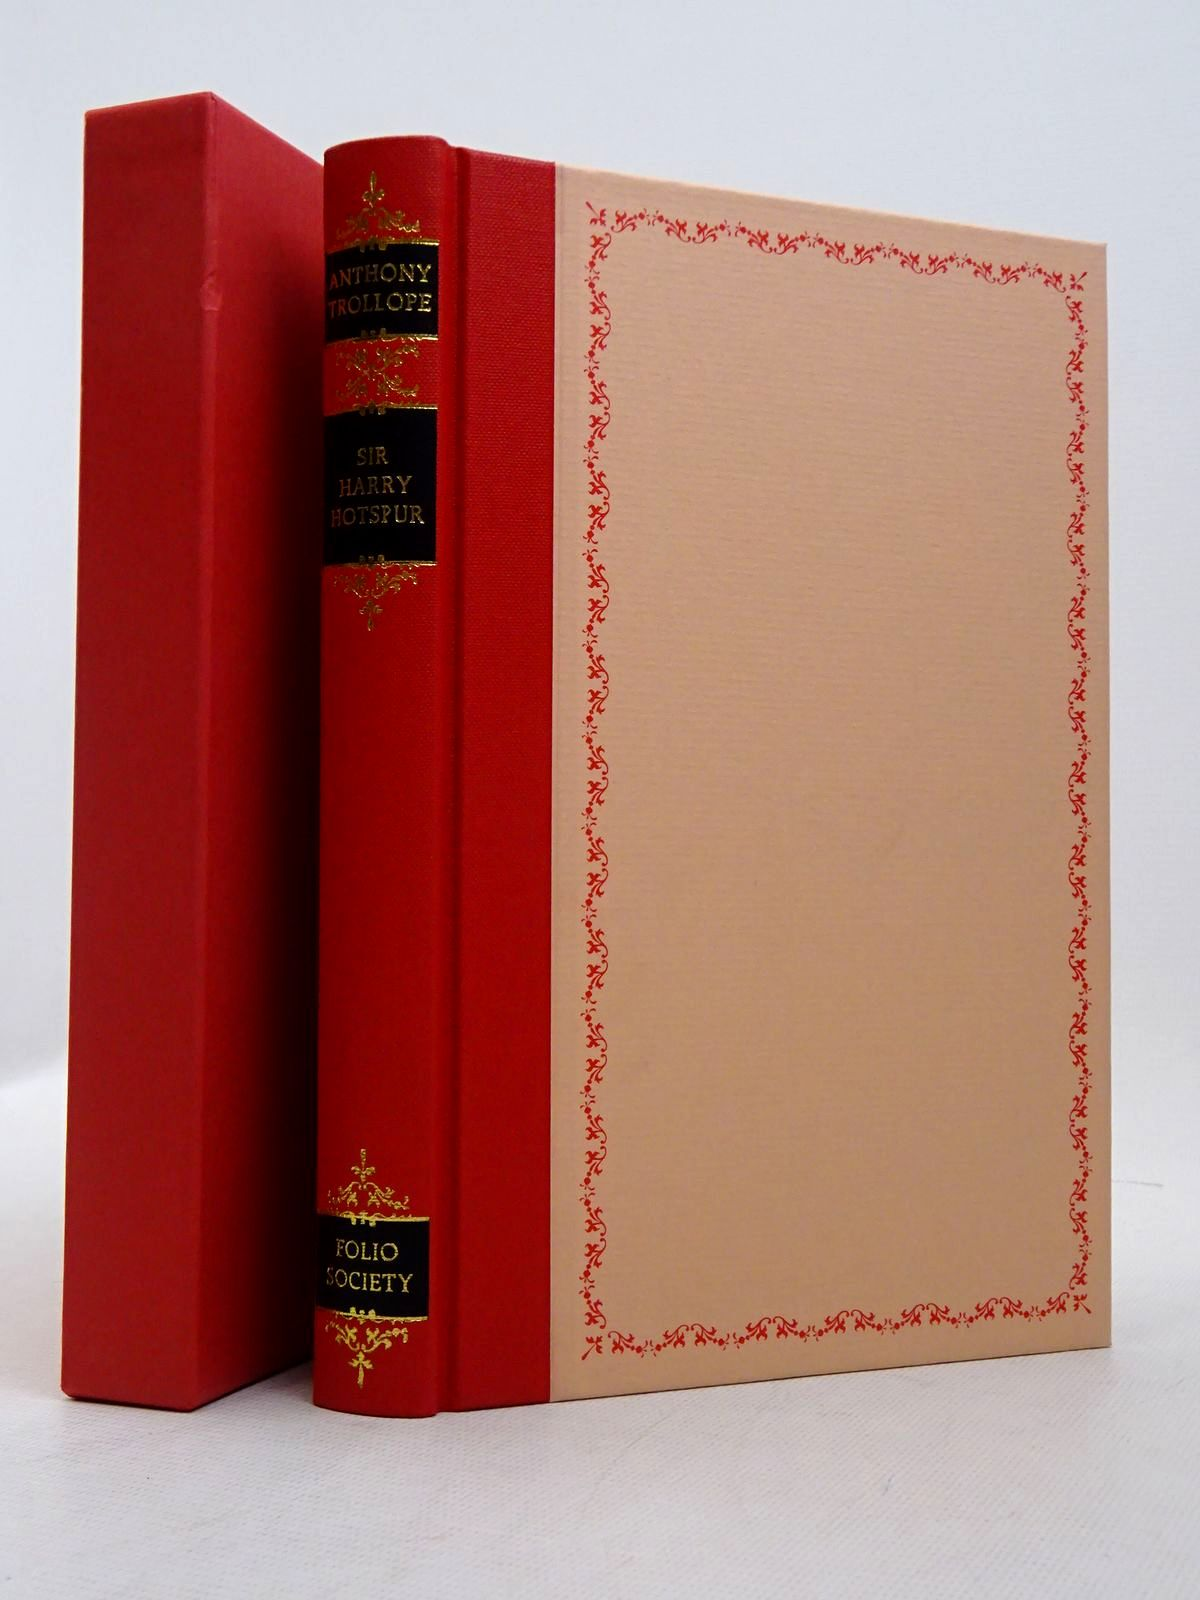 Photo of SIR HARRY HOTSPUR OF HUMBLETHWAITE written by Trollope, Anthony Bradbury, Sue illustrated by Brookes, Peter published by Folio Society (STOCK CODE: 1817293)  for sale by Stella & Rose's Books